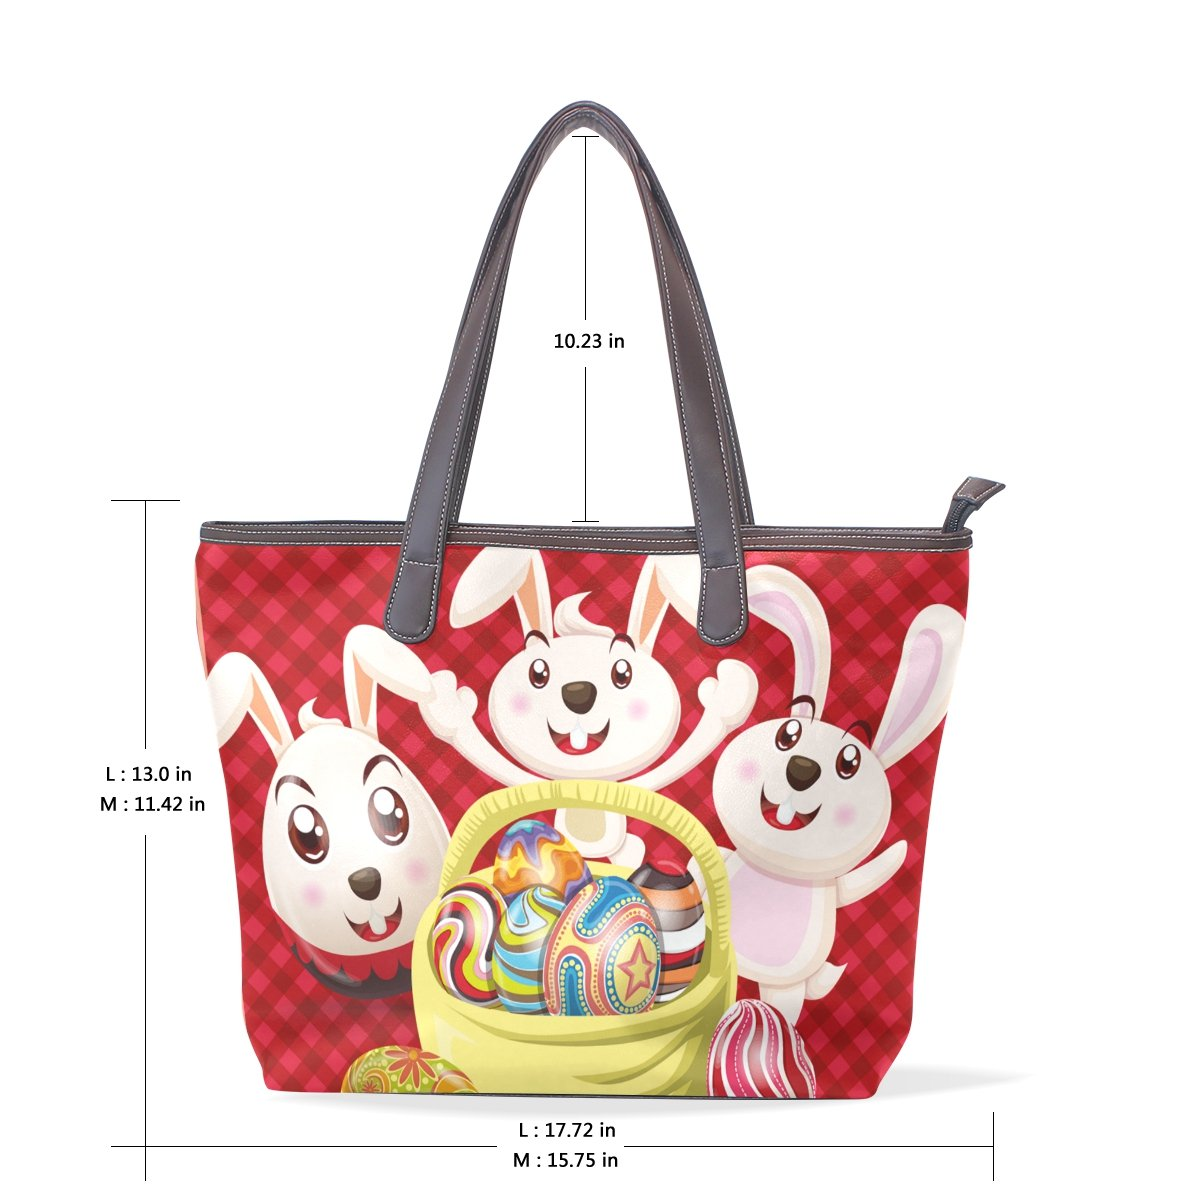 Happy Easter Day Bunny Egg Womens Fashion Large Shoulder Bag Handbag Tote Purse for Lady